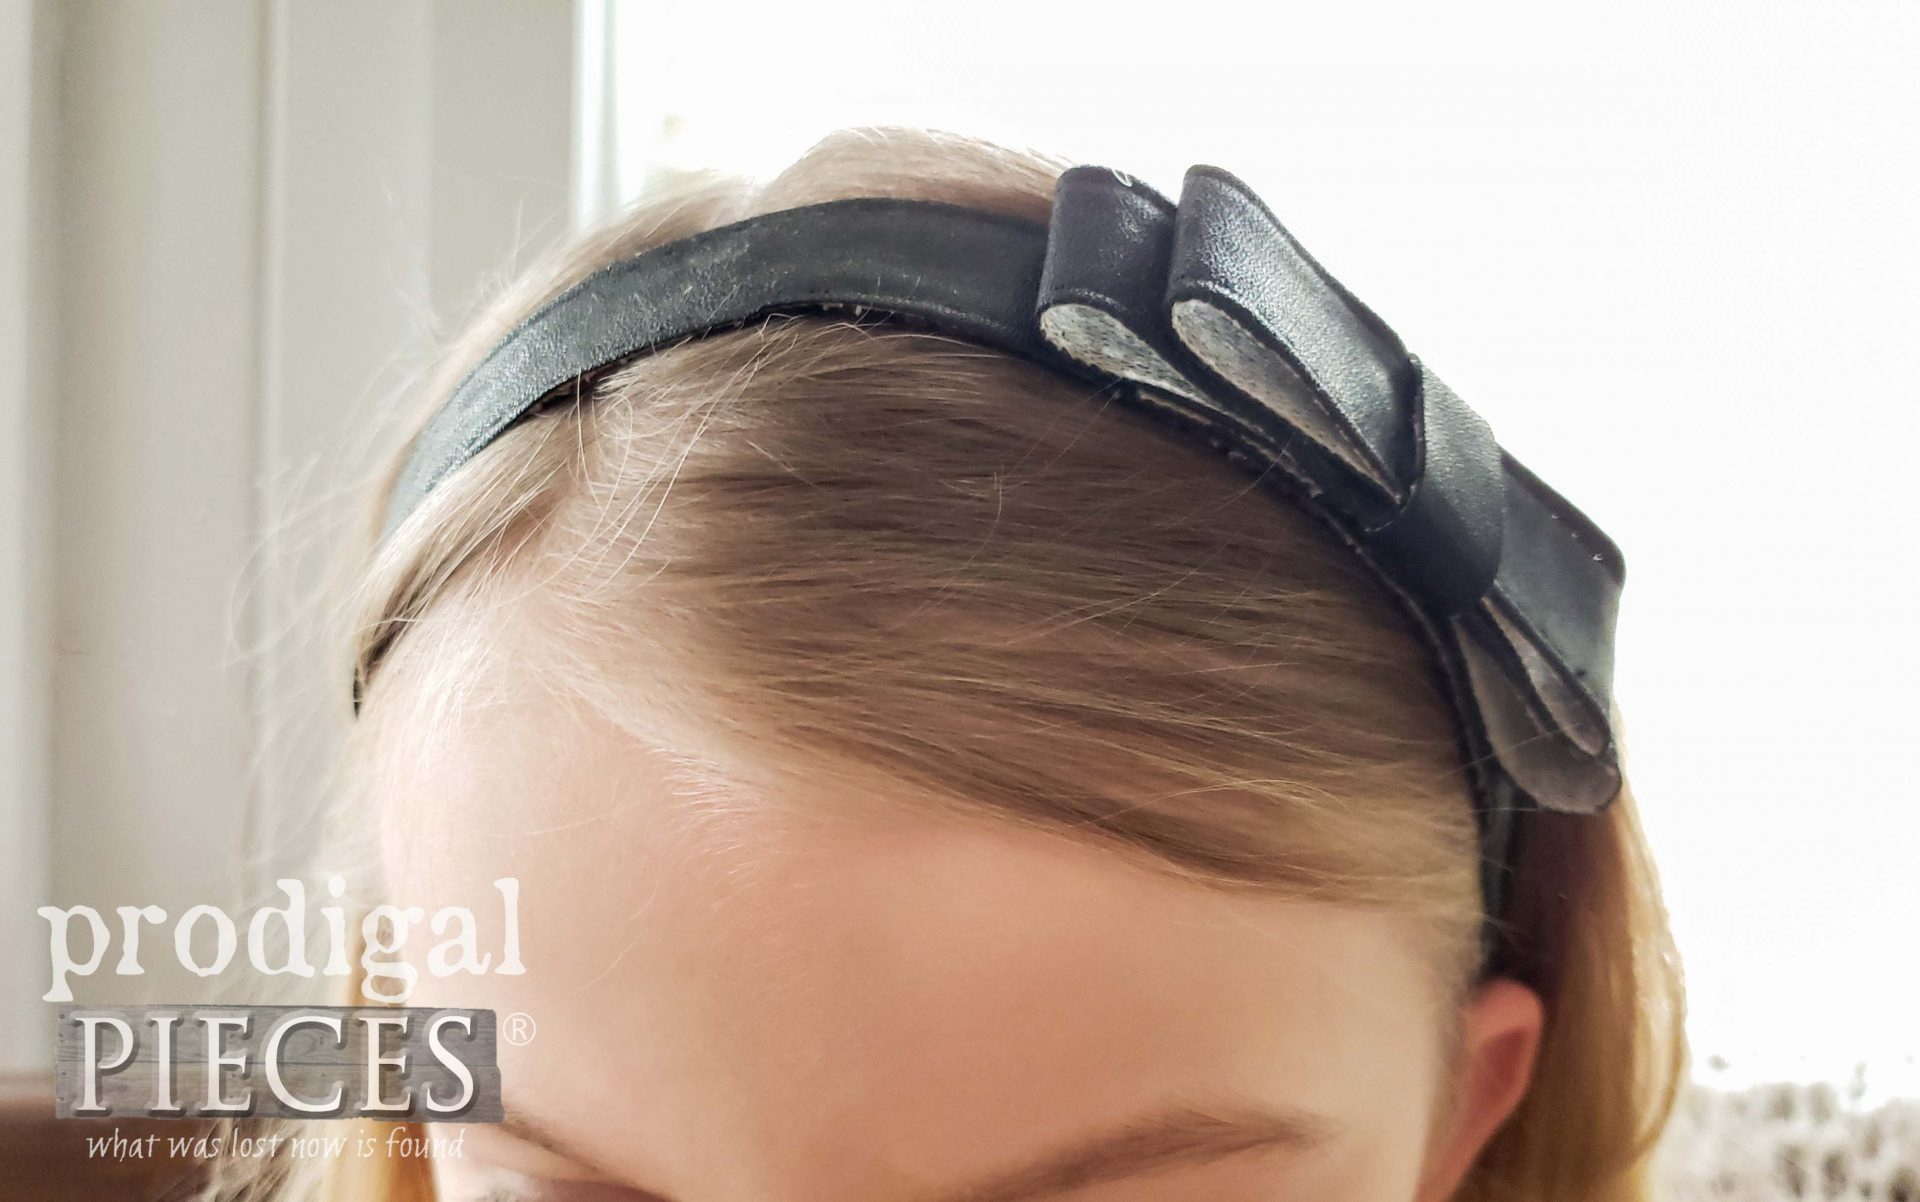 DIY Leather Headband from Upcycled Leather Purse by Prodigal Pieces | prodigalpieces.com